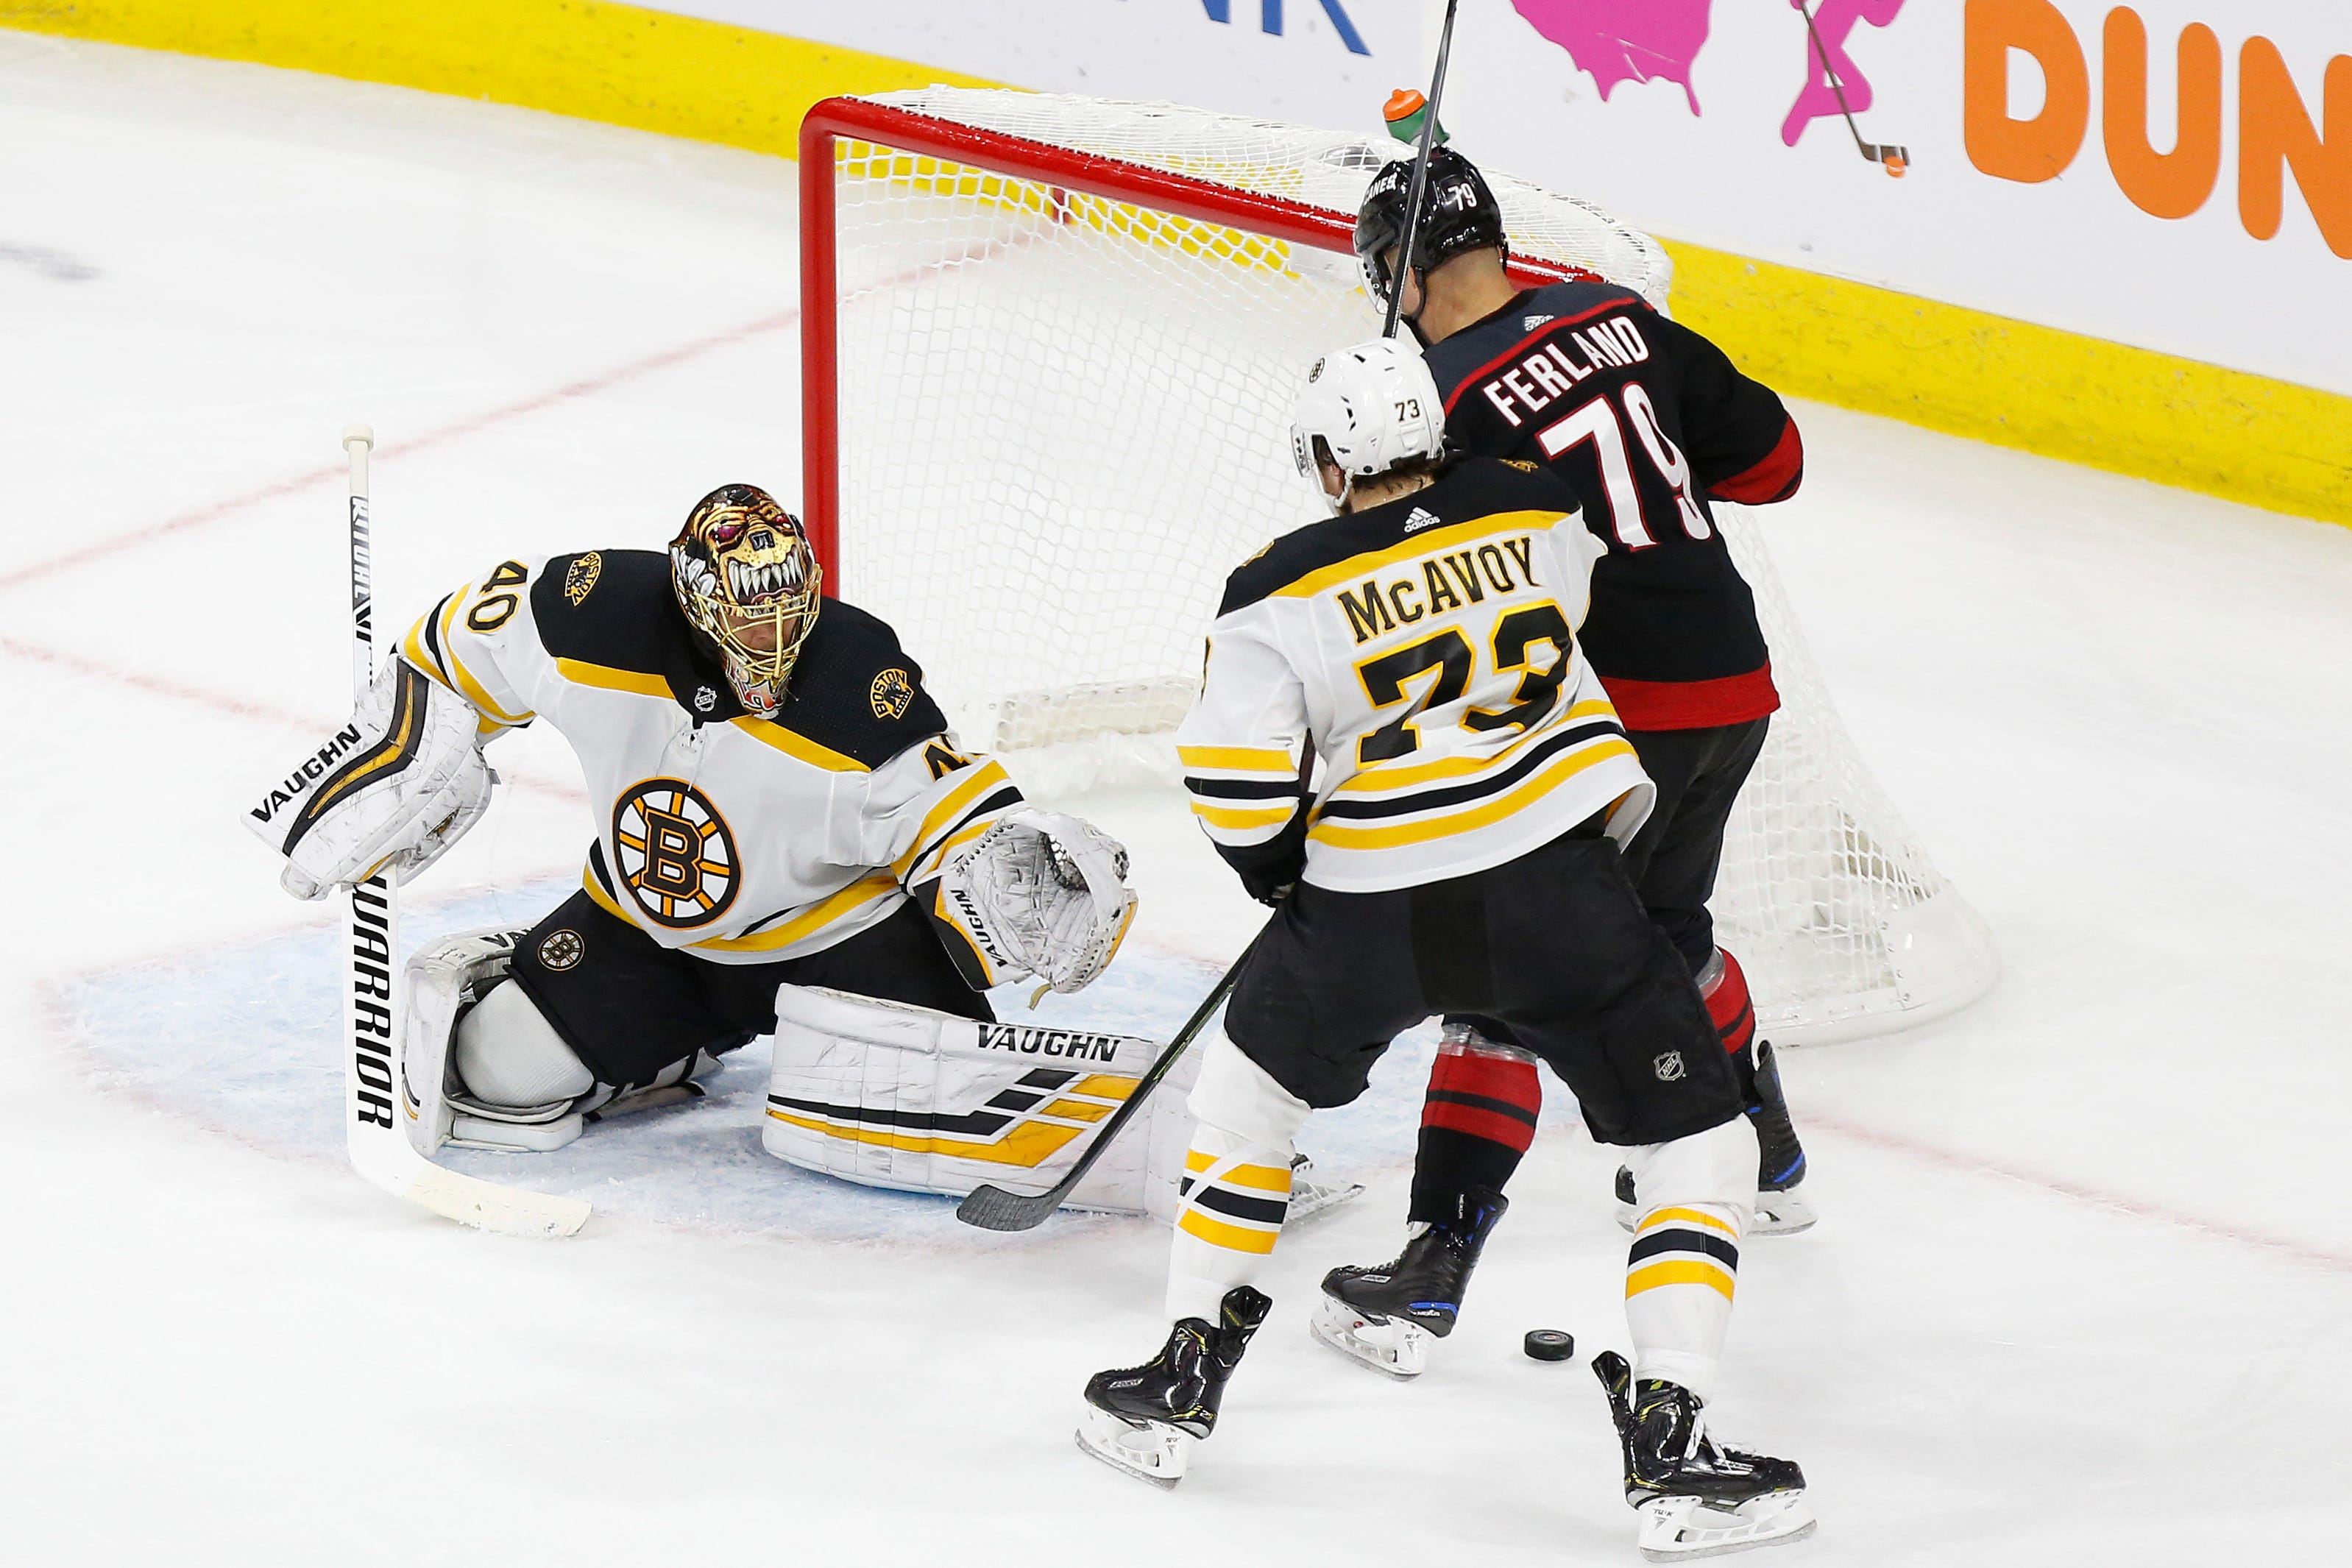 Bruins goalie Tuukka Rask brilliant in 2-1 victory that pushes Hurricanes to brink